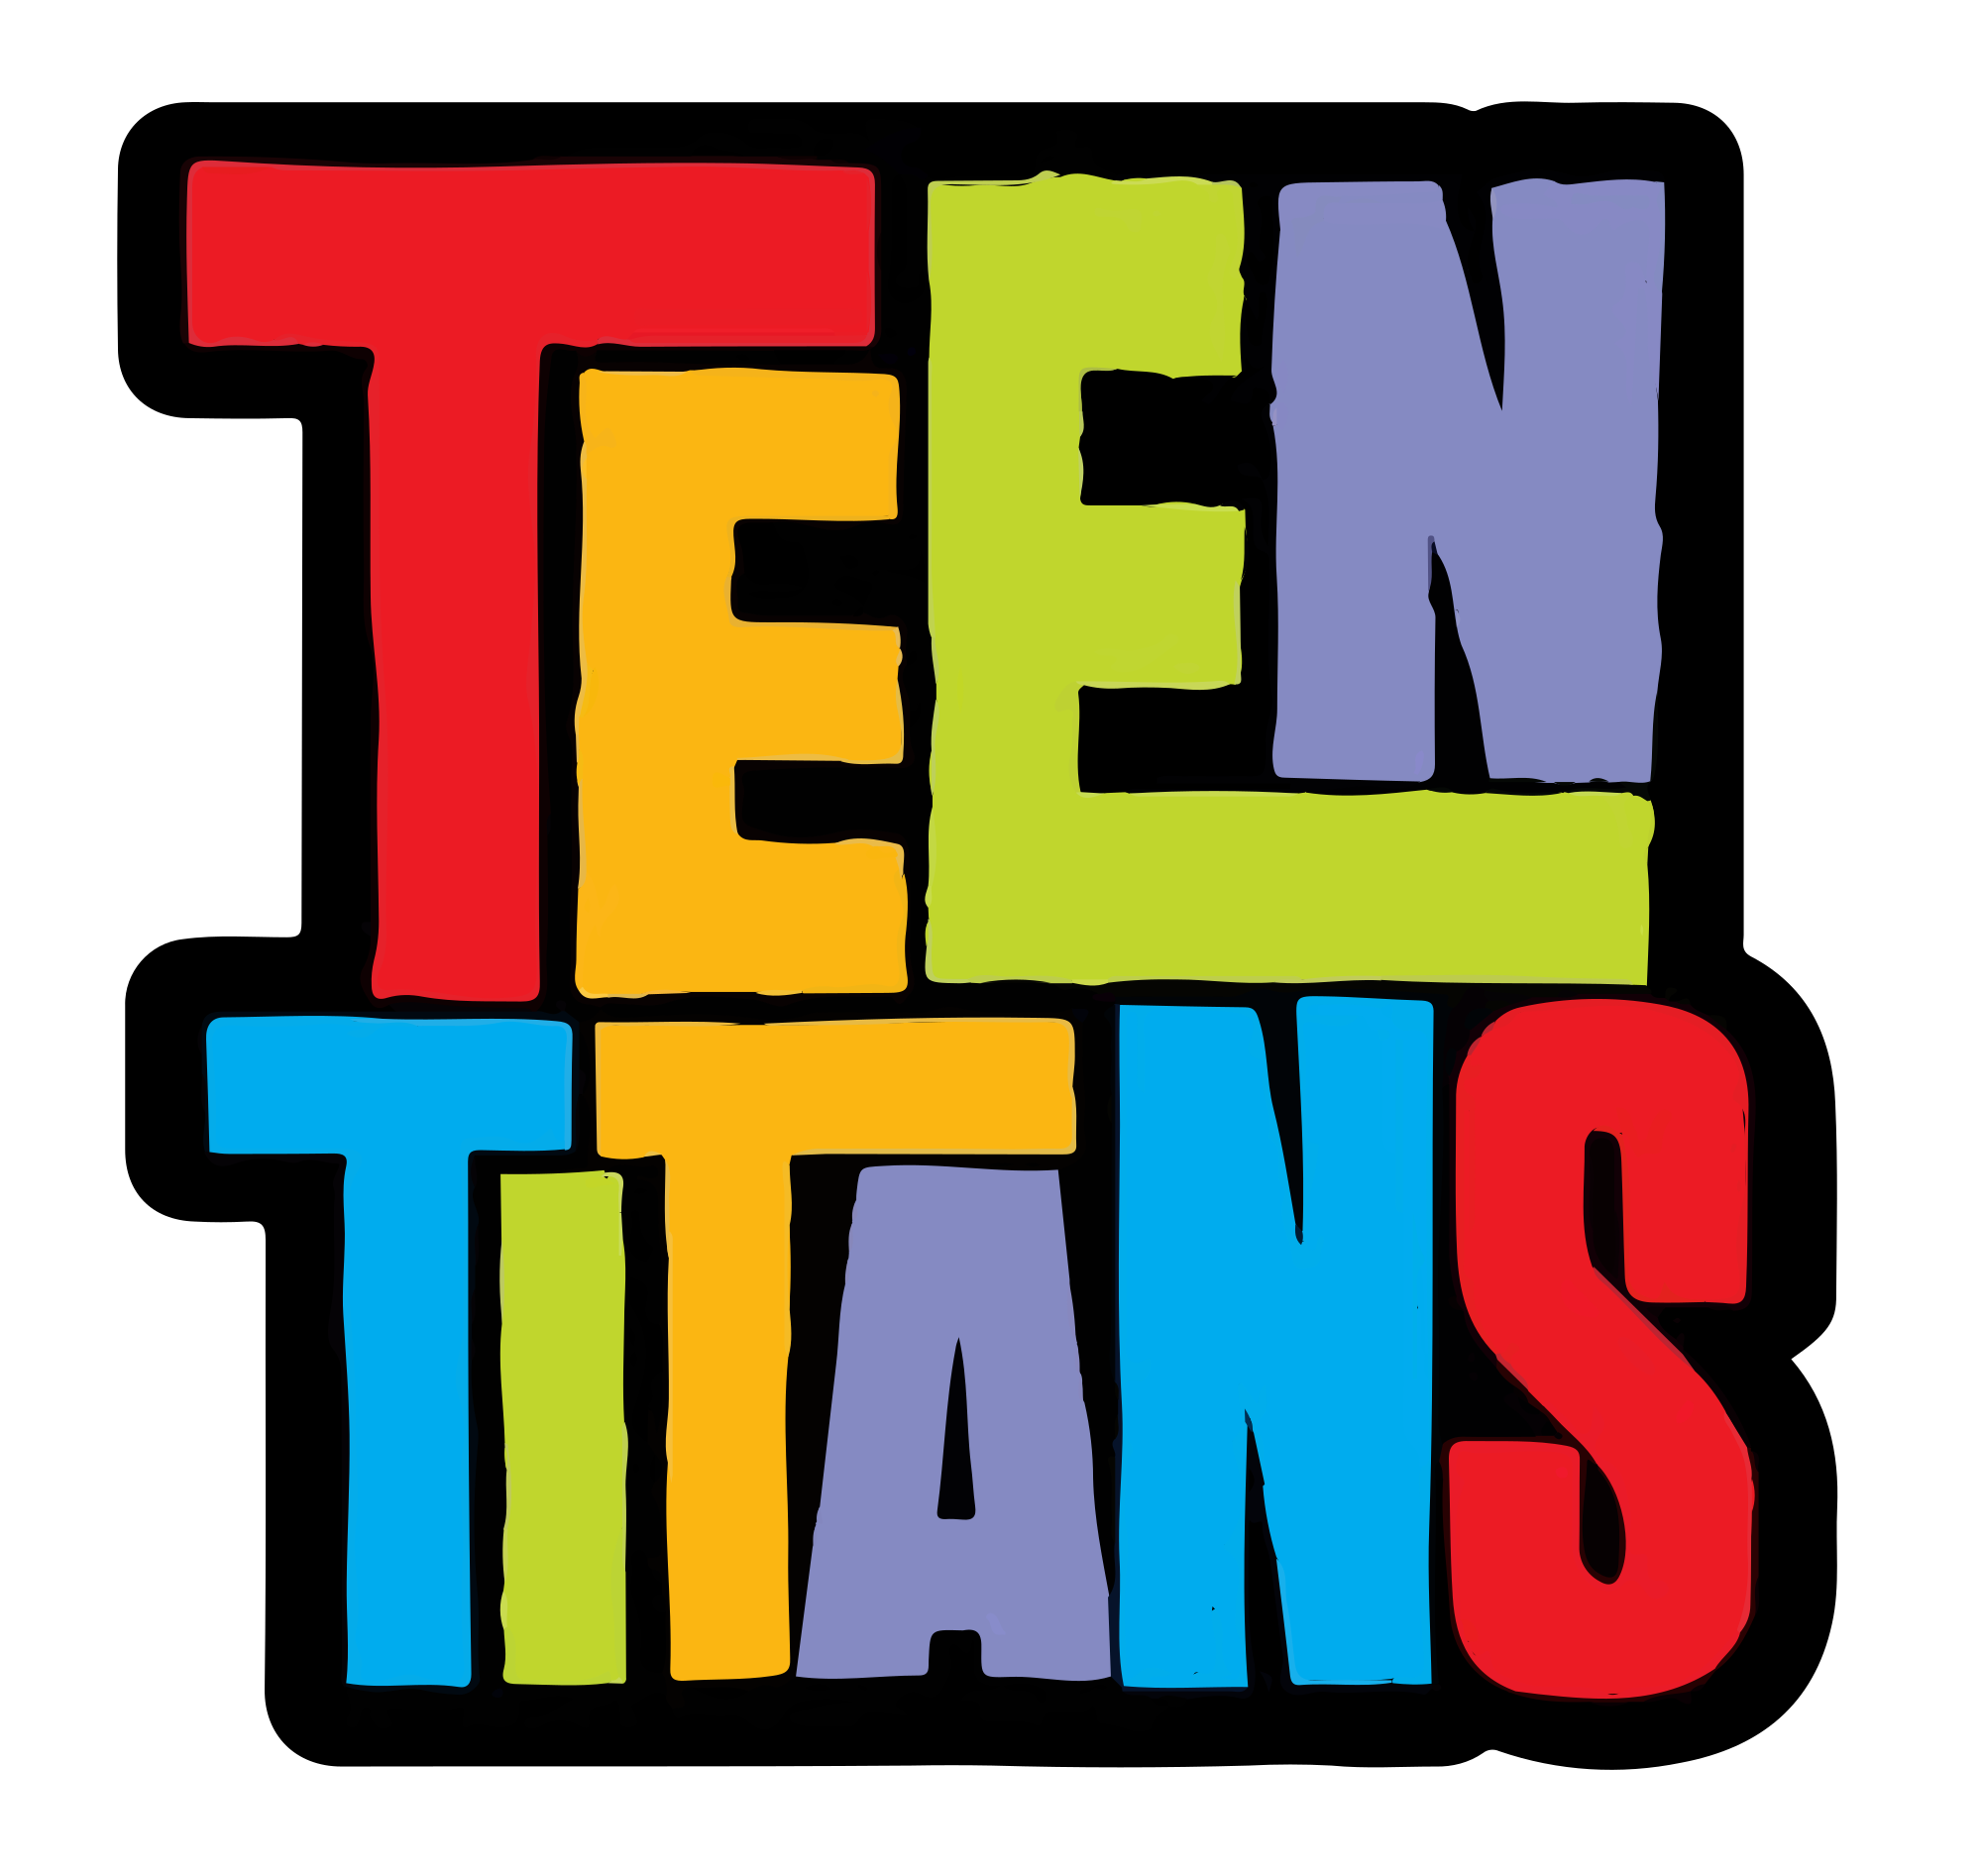 Static drawing old tv. Teen titans series wikipedia